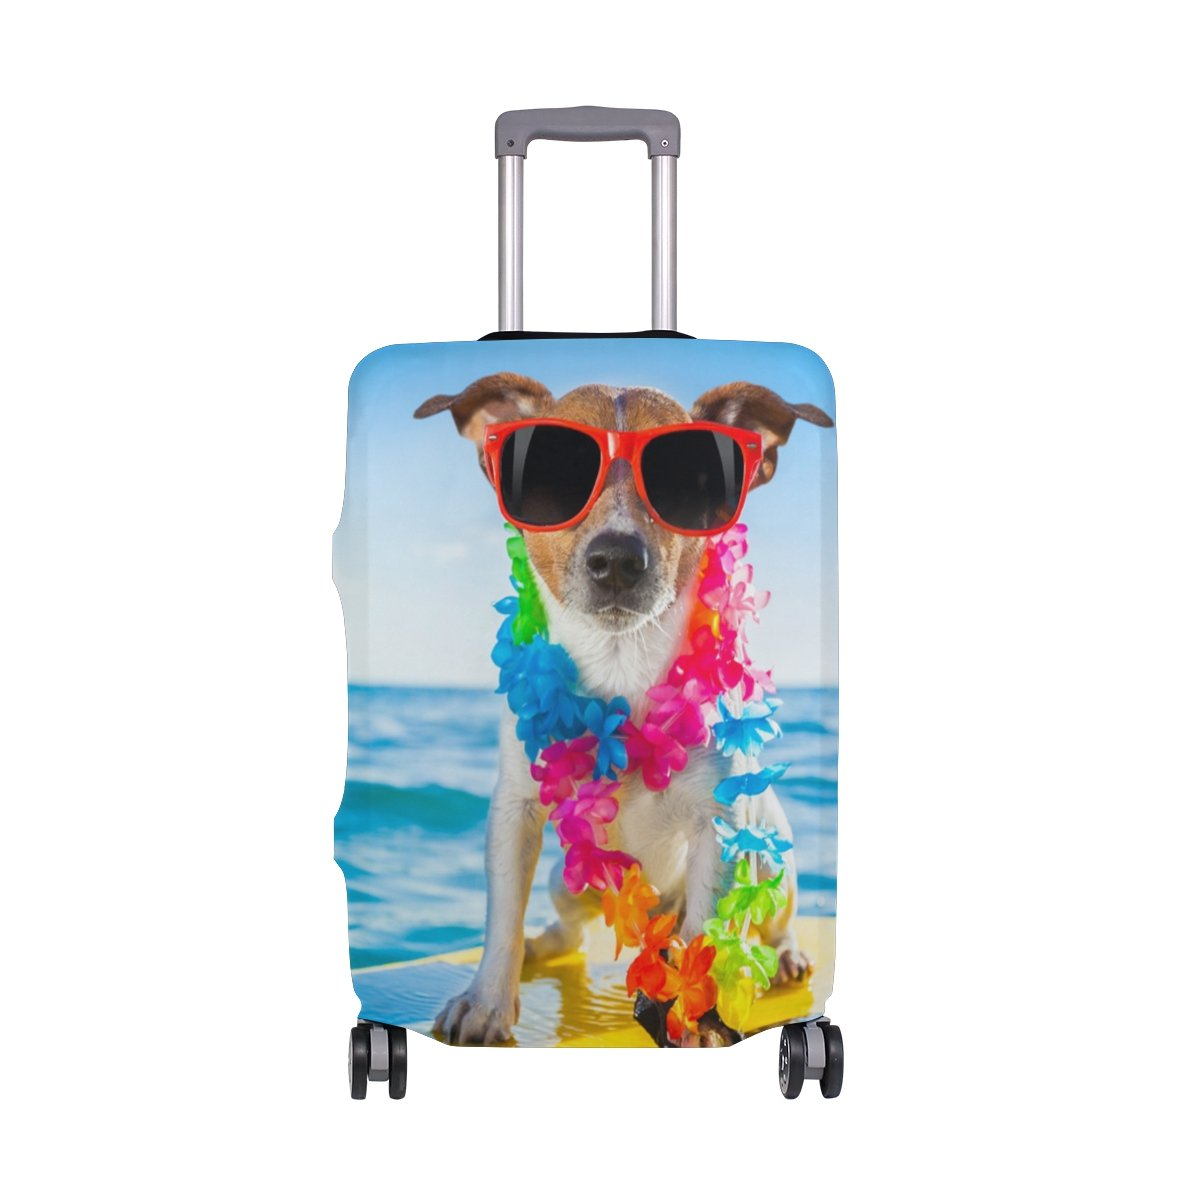 MyDaily Funny Surfing Dog Luggage Cover Fits 18-22 inch Suitcase Spandex Travel Protector S